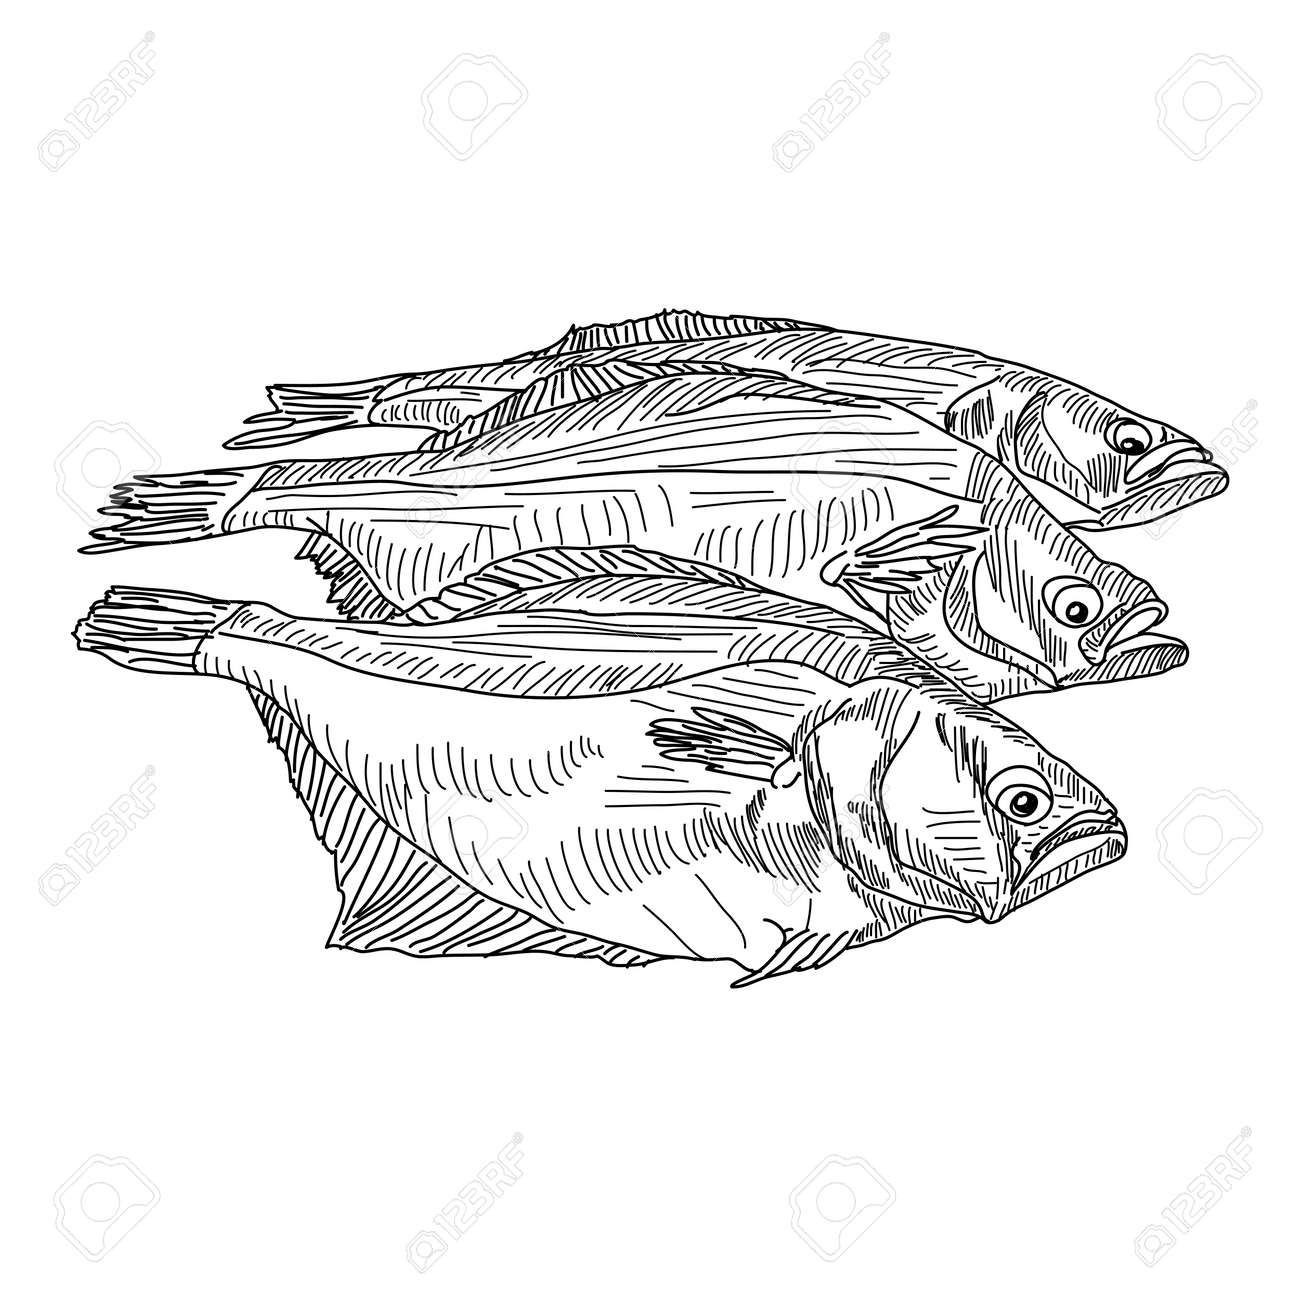 vector drawing hand fish Stock Vector - 10960821